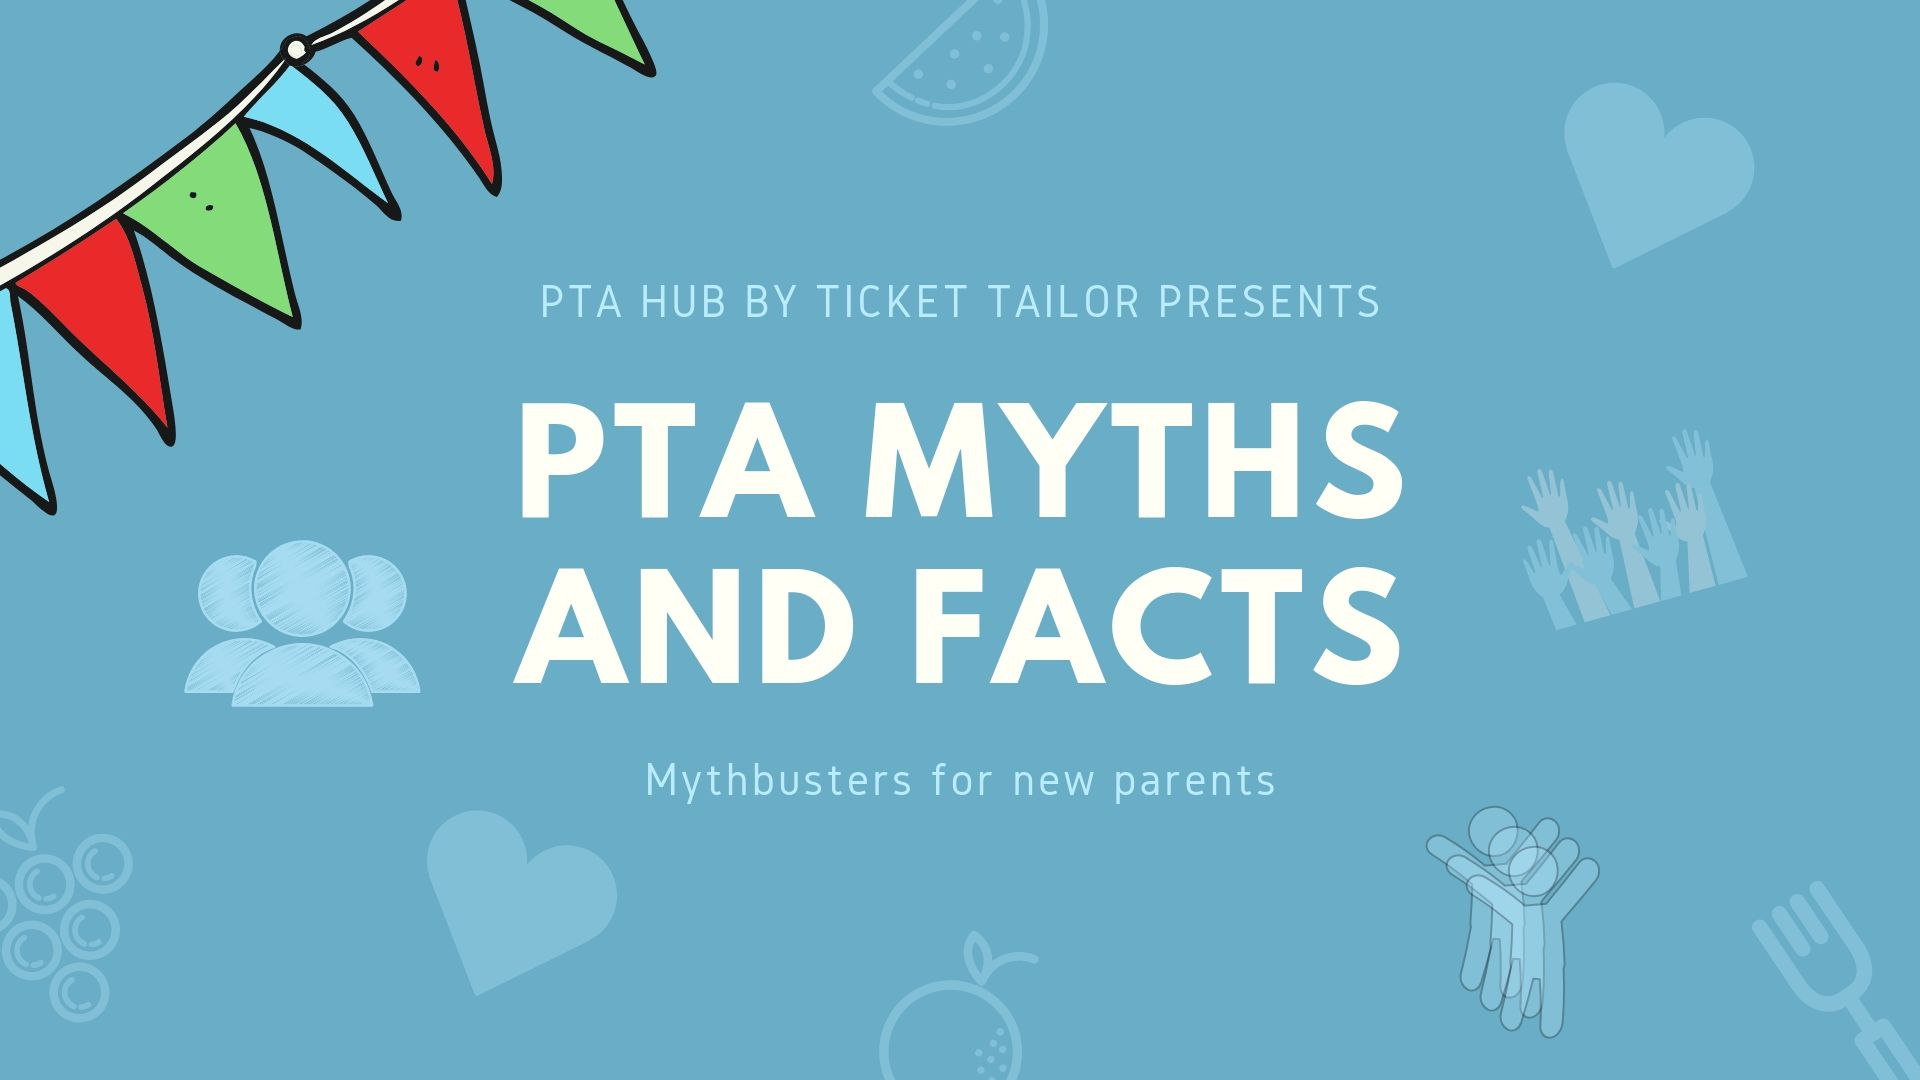 PTA Myths and Facts.jpg